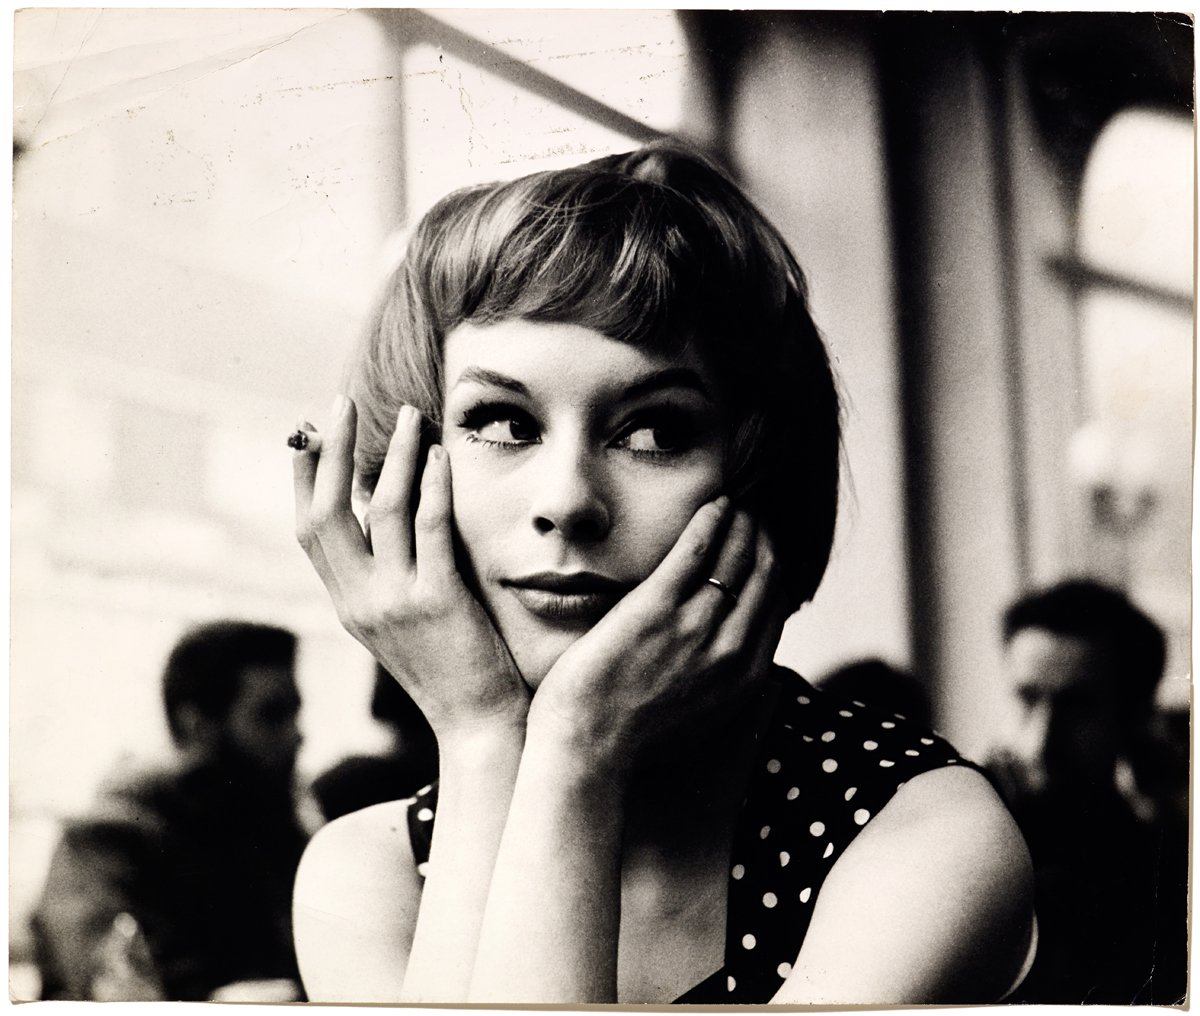 Girl In Cafe, late 1950s. (c) John Deakin, The John Deakin Archive 2013